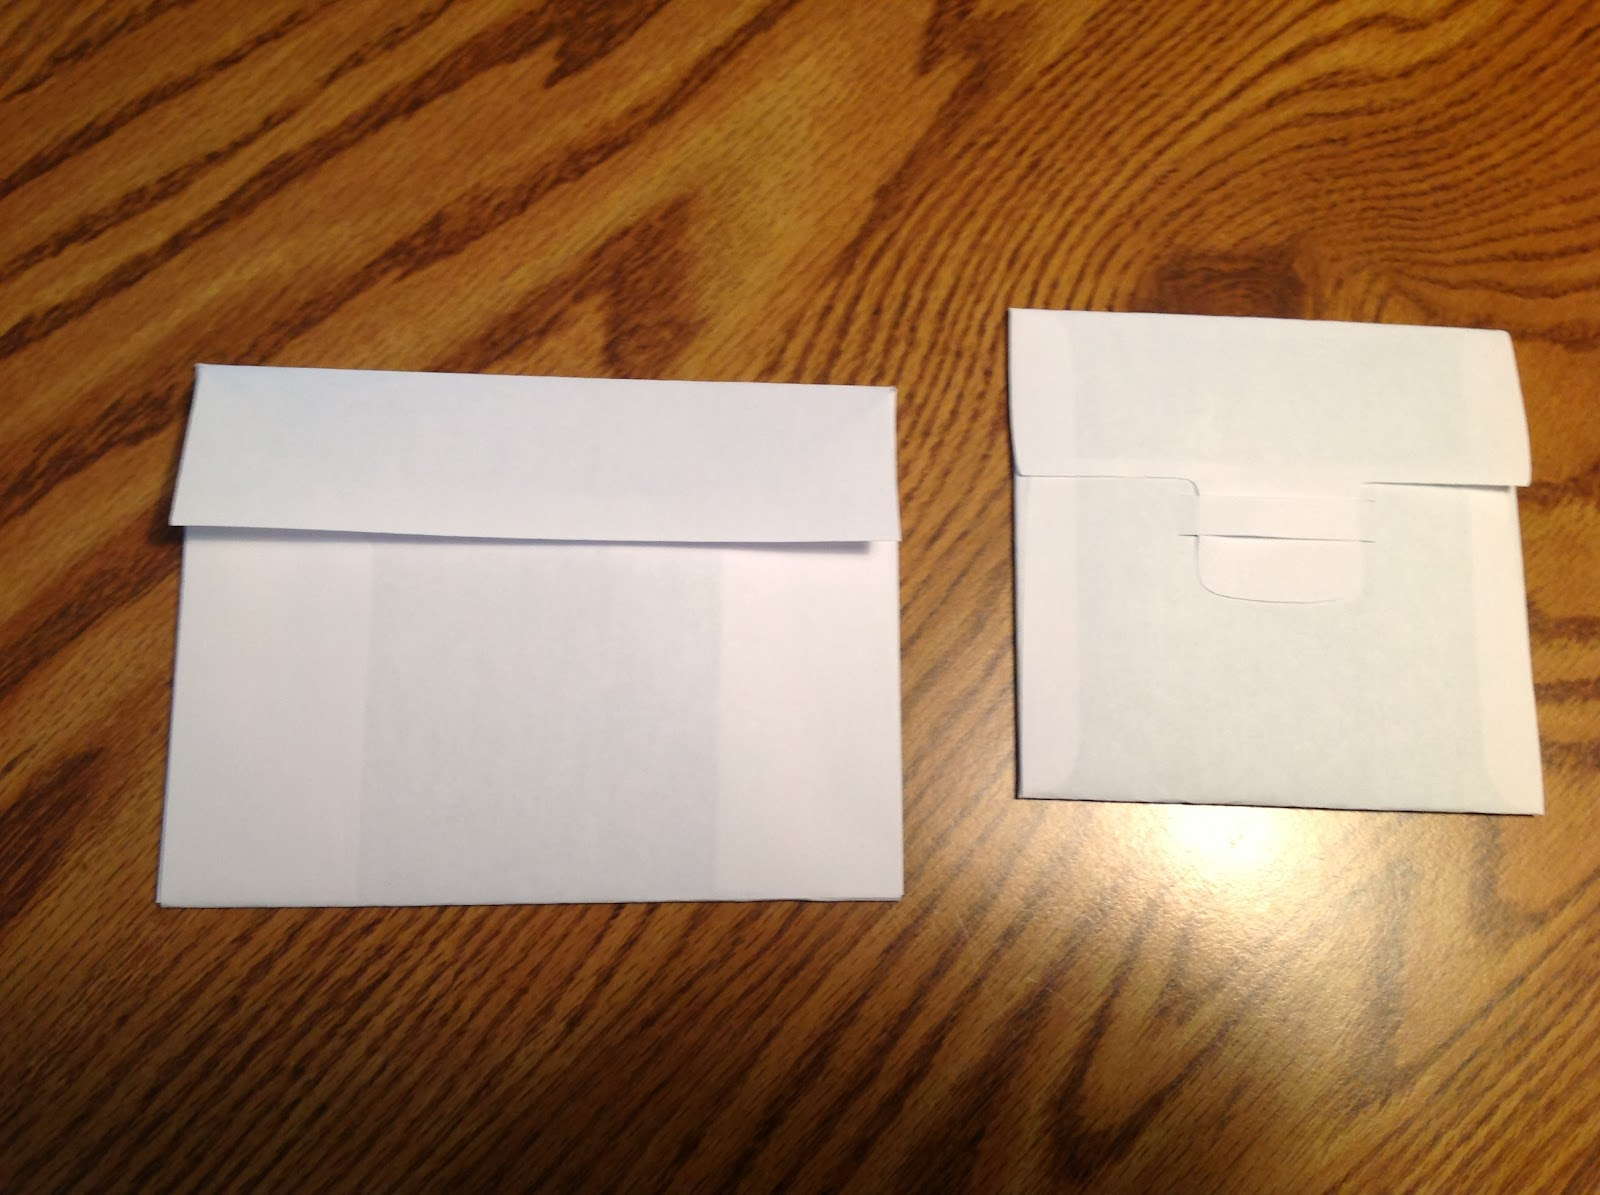 Papercrafts And Other Fun Things Plain Envelope And Plain